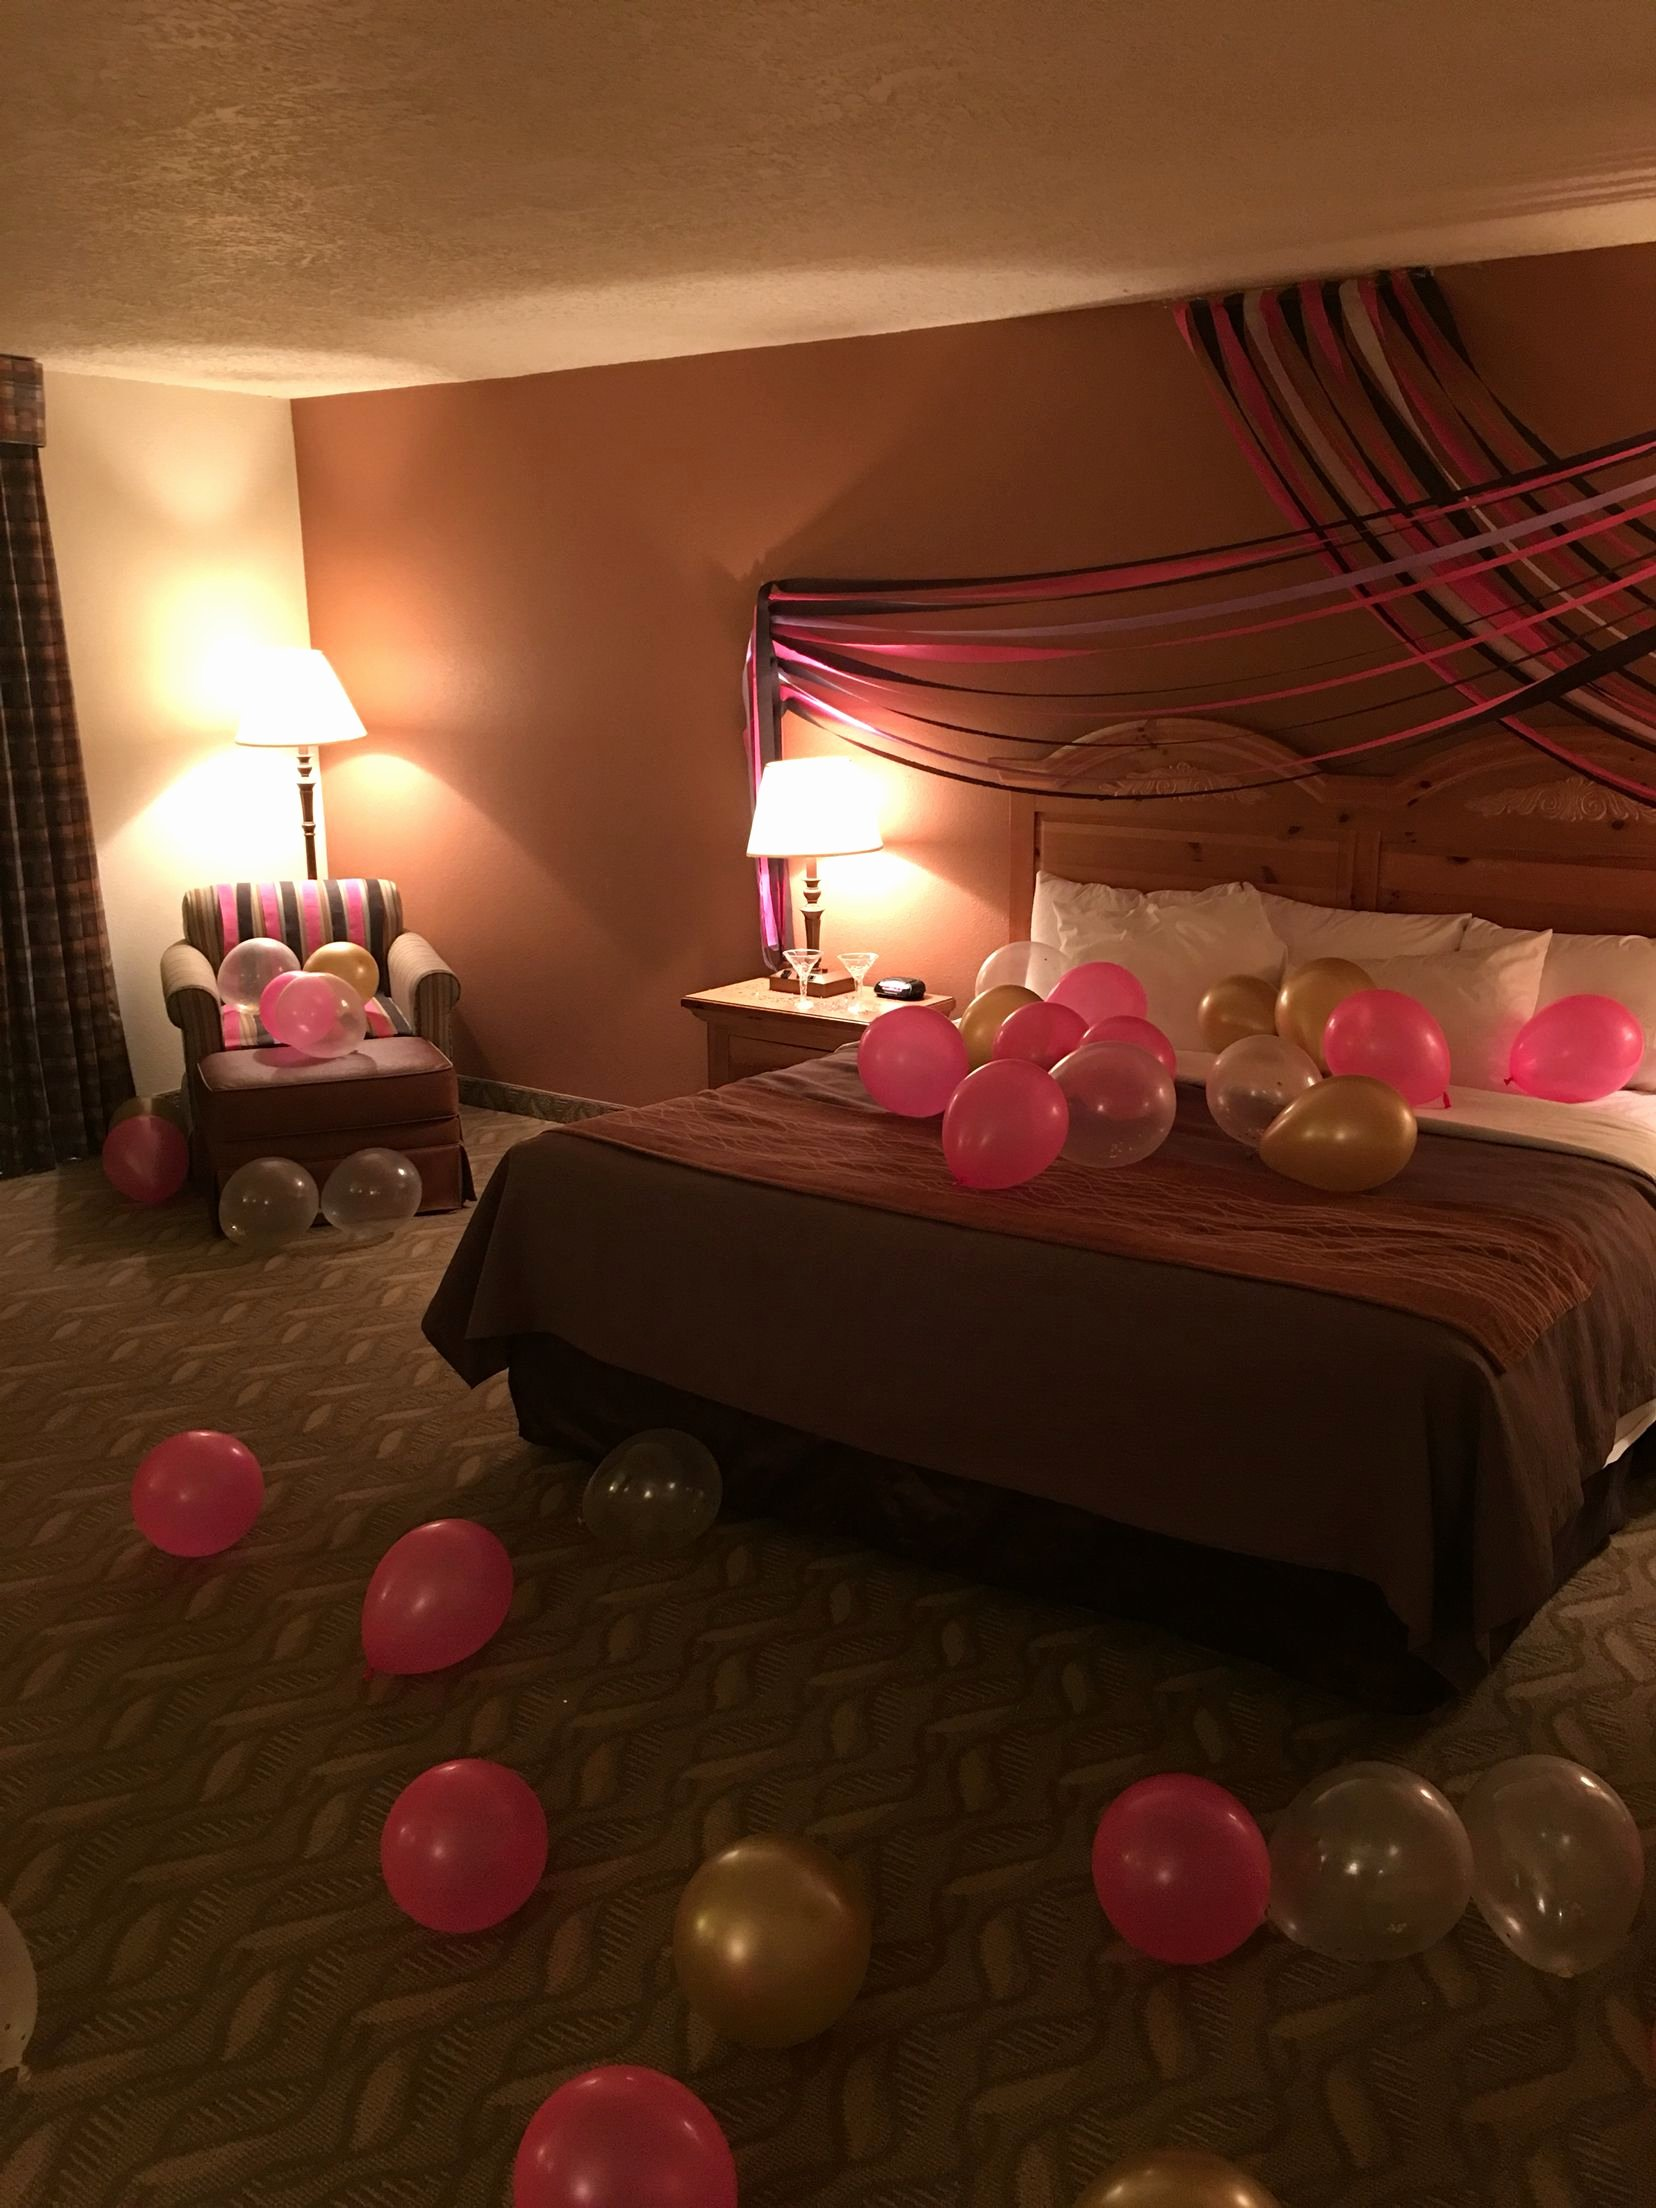 Birthday Decoration Ideas for Hotel Room Lovely Surprise Birthday Hotel Decor for My Best Friend